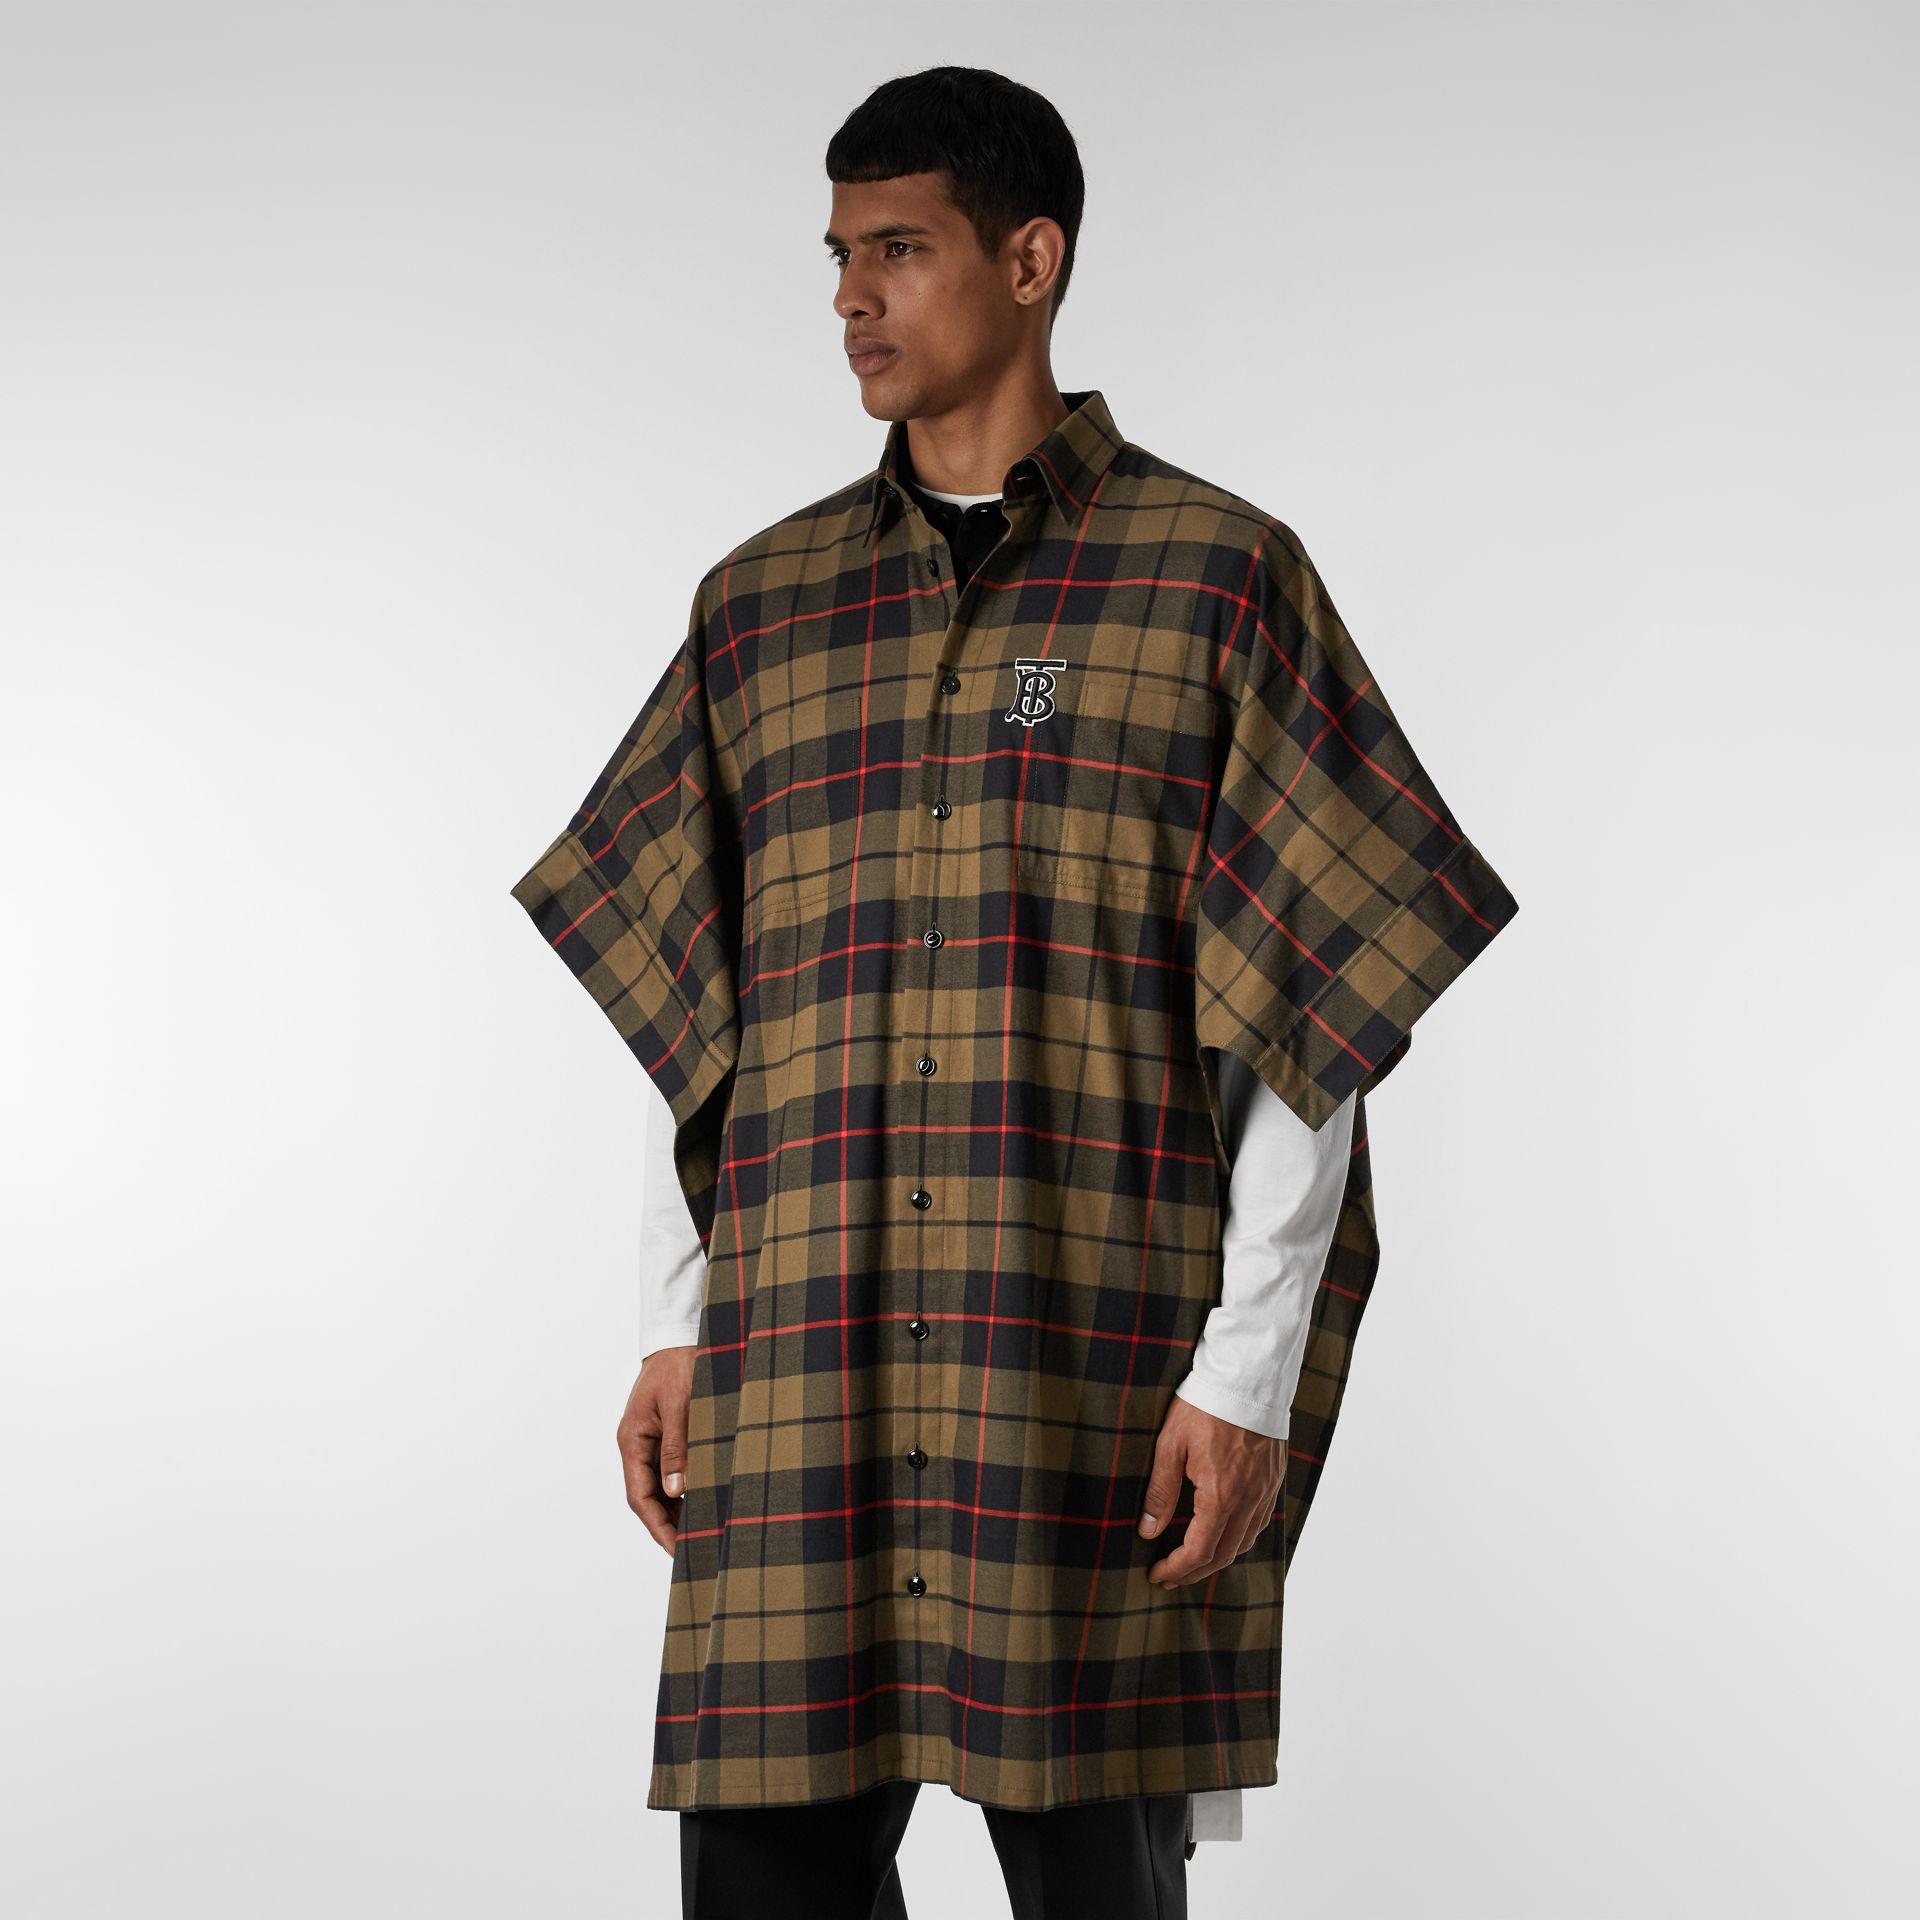 Monogram Motif Check Cotton Oversized Poncho in Military Olive | Burberry - gallery image 10